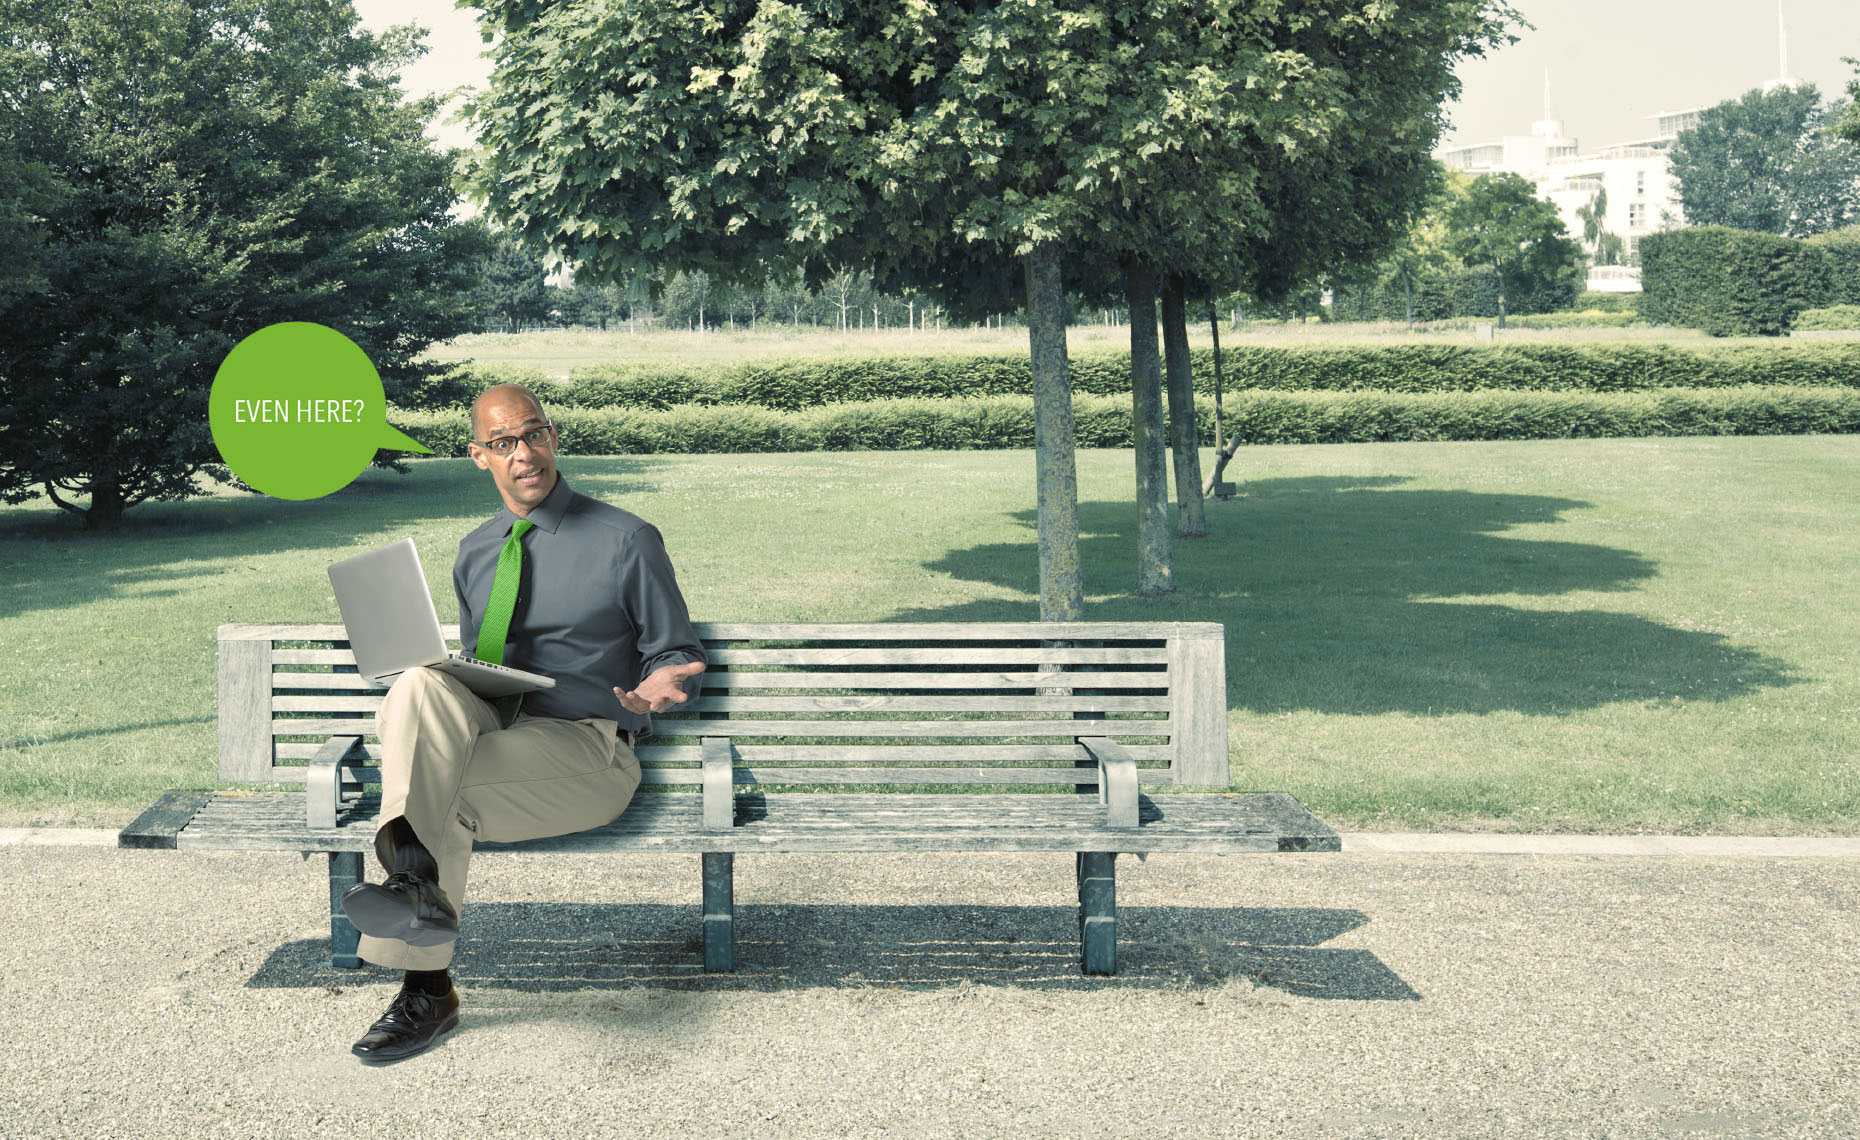 African American man sitting on a park bench holding a laptop